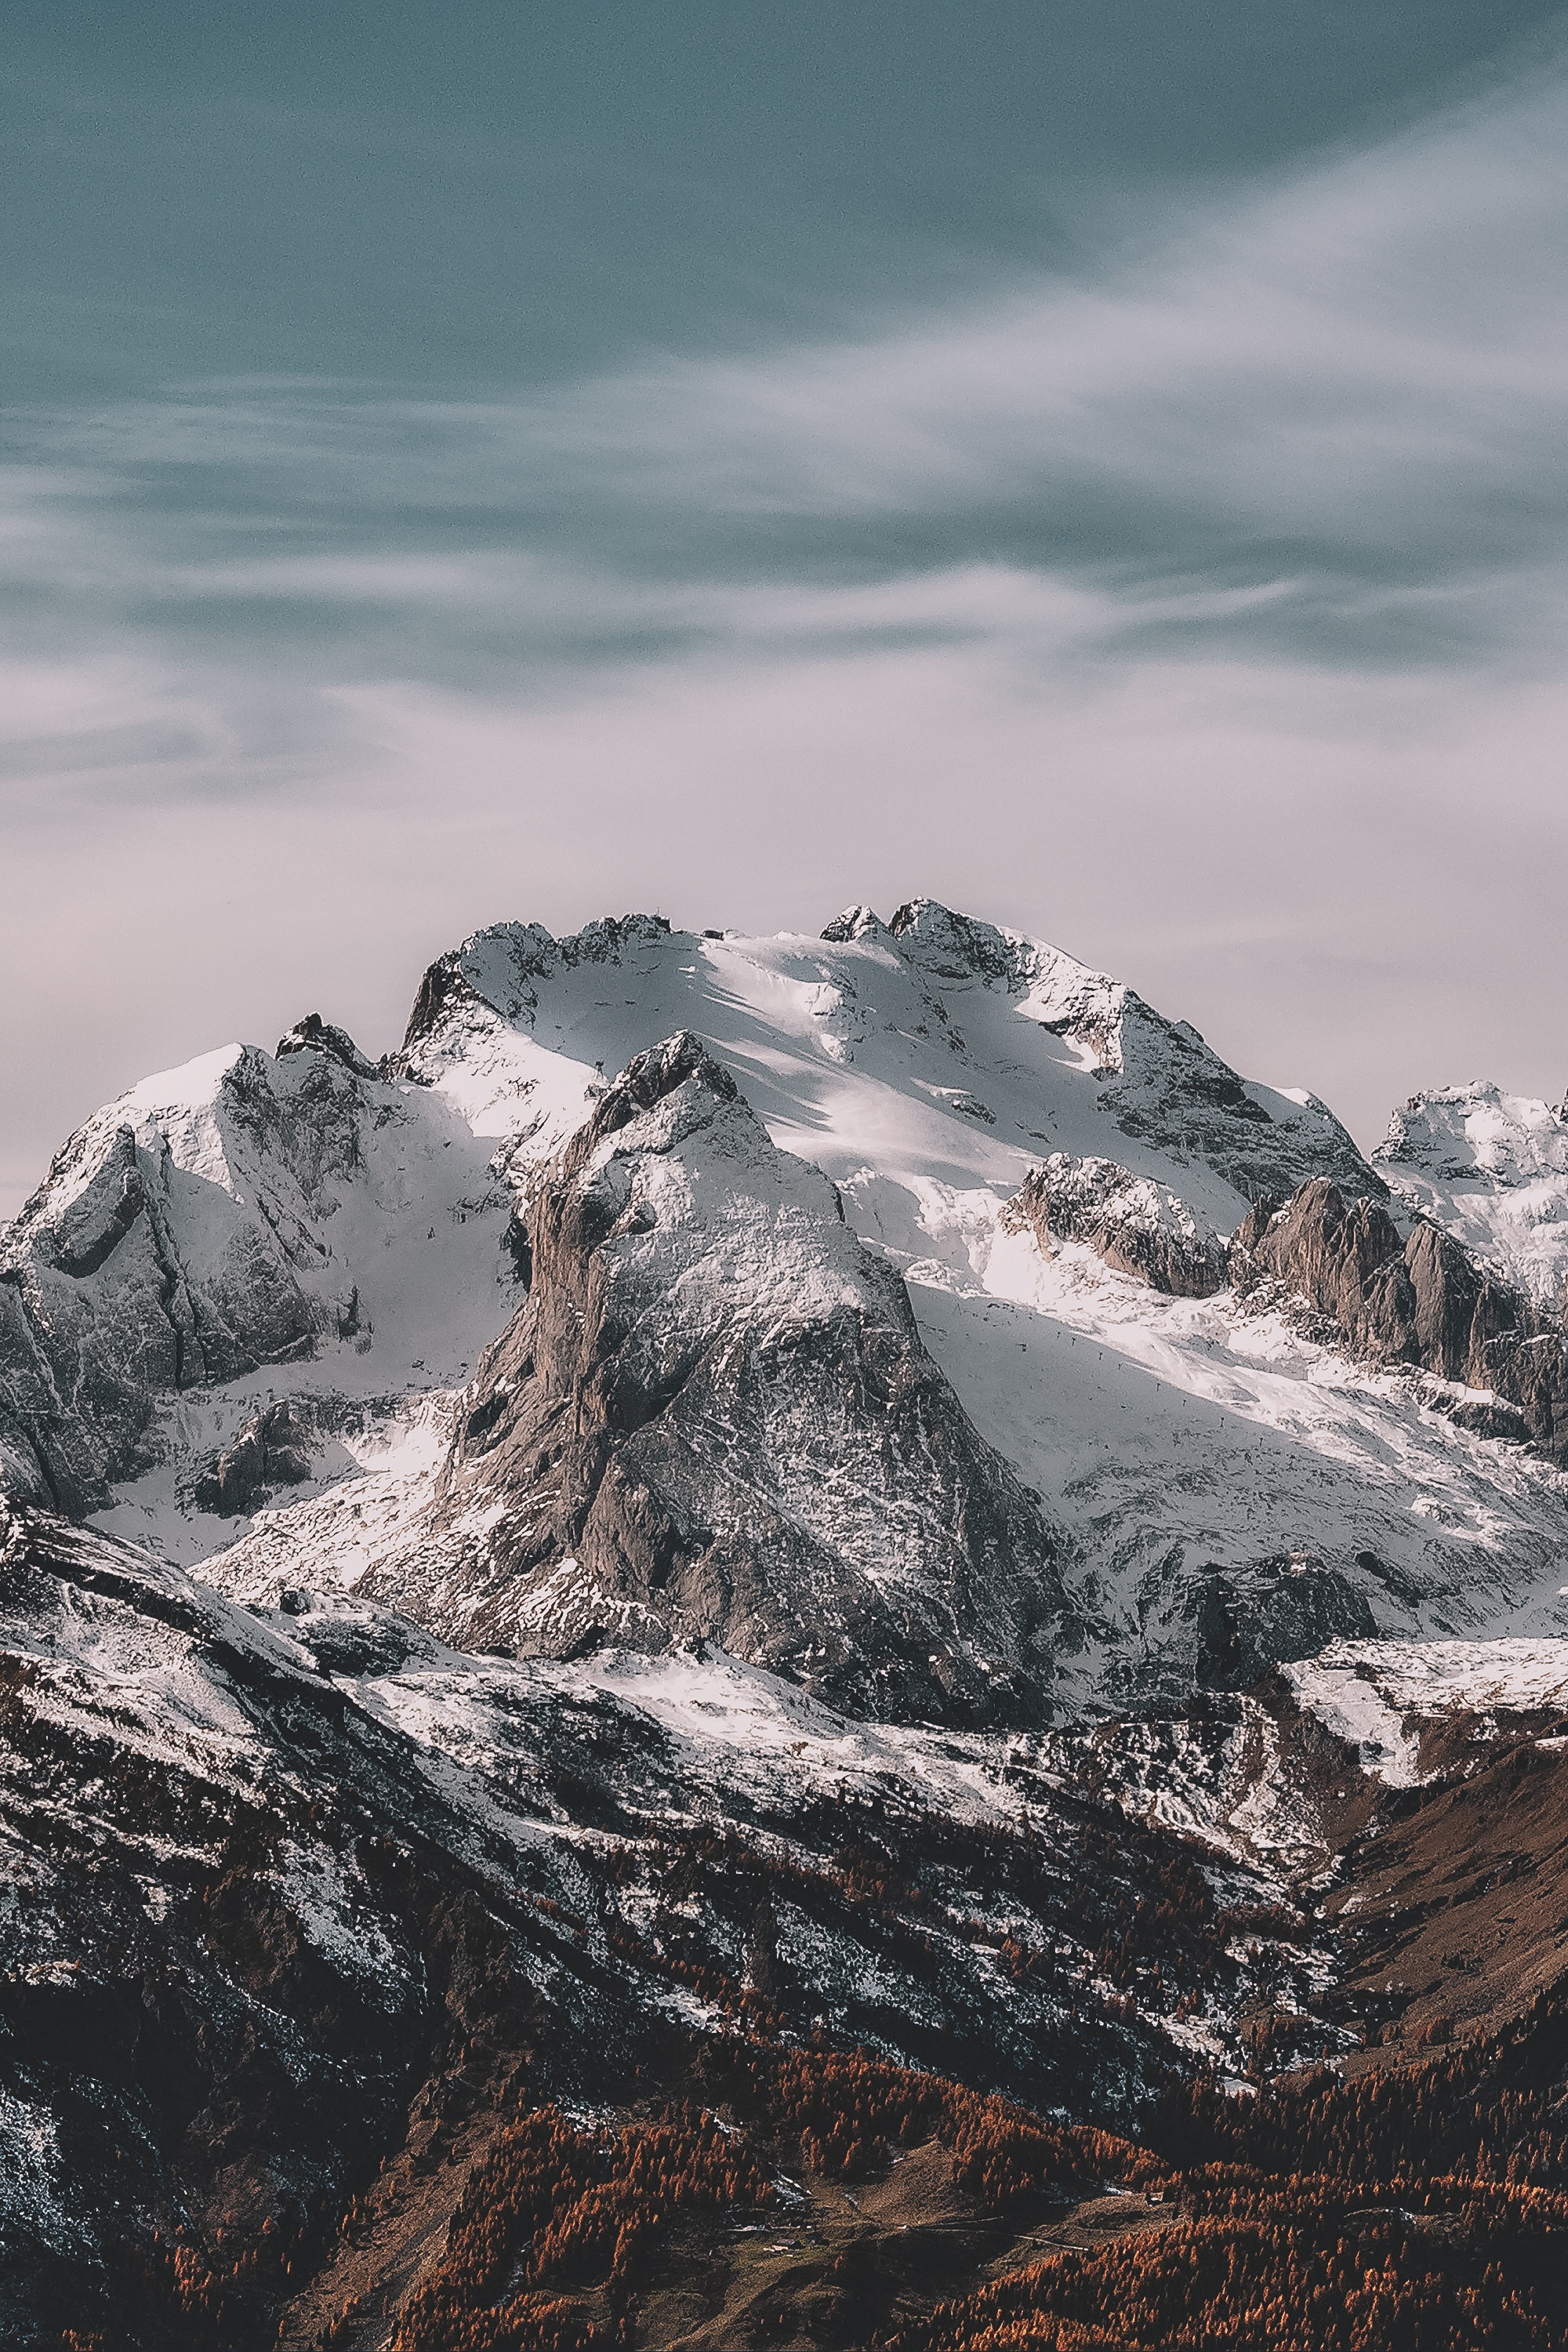 Landscape Photography Of Snowy Mountain Free Stock Photo